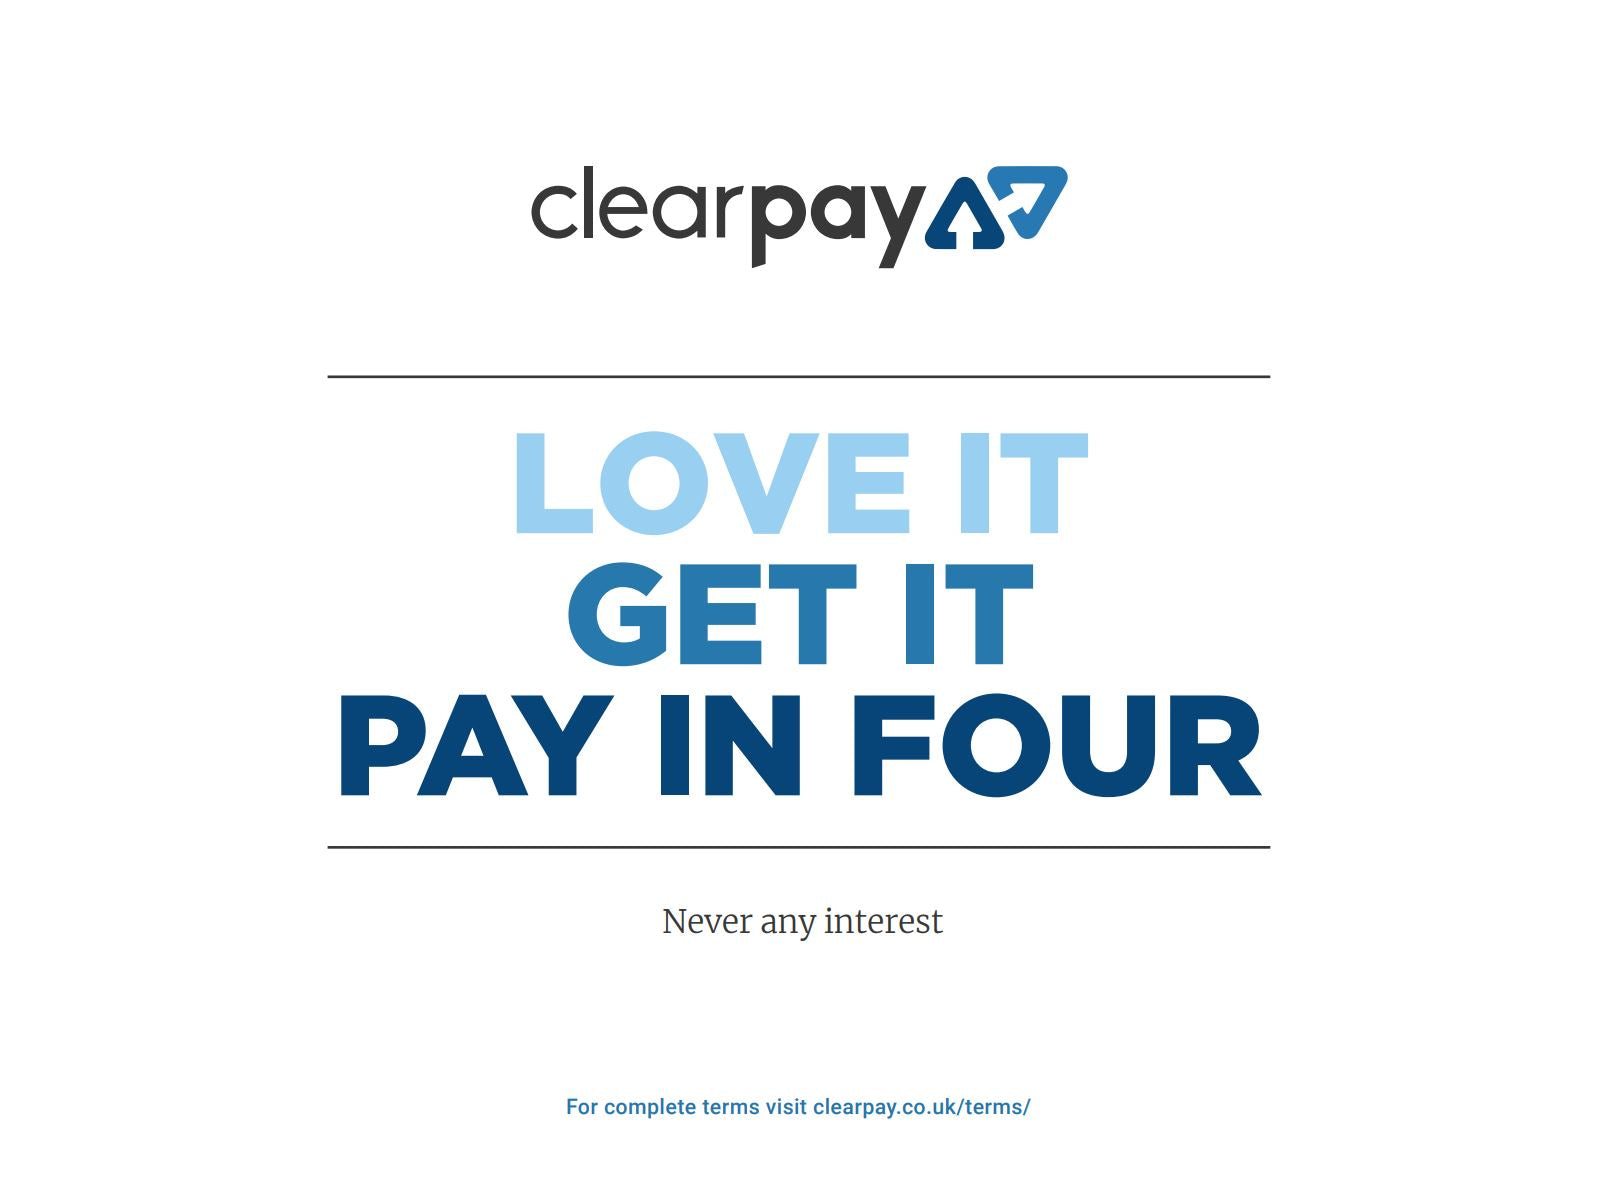 Buy now pay later with Clearpay